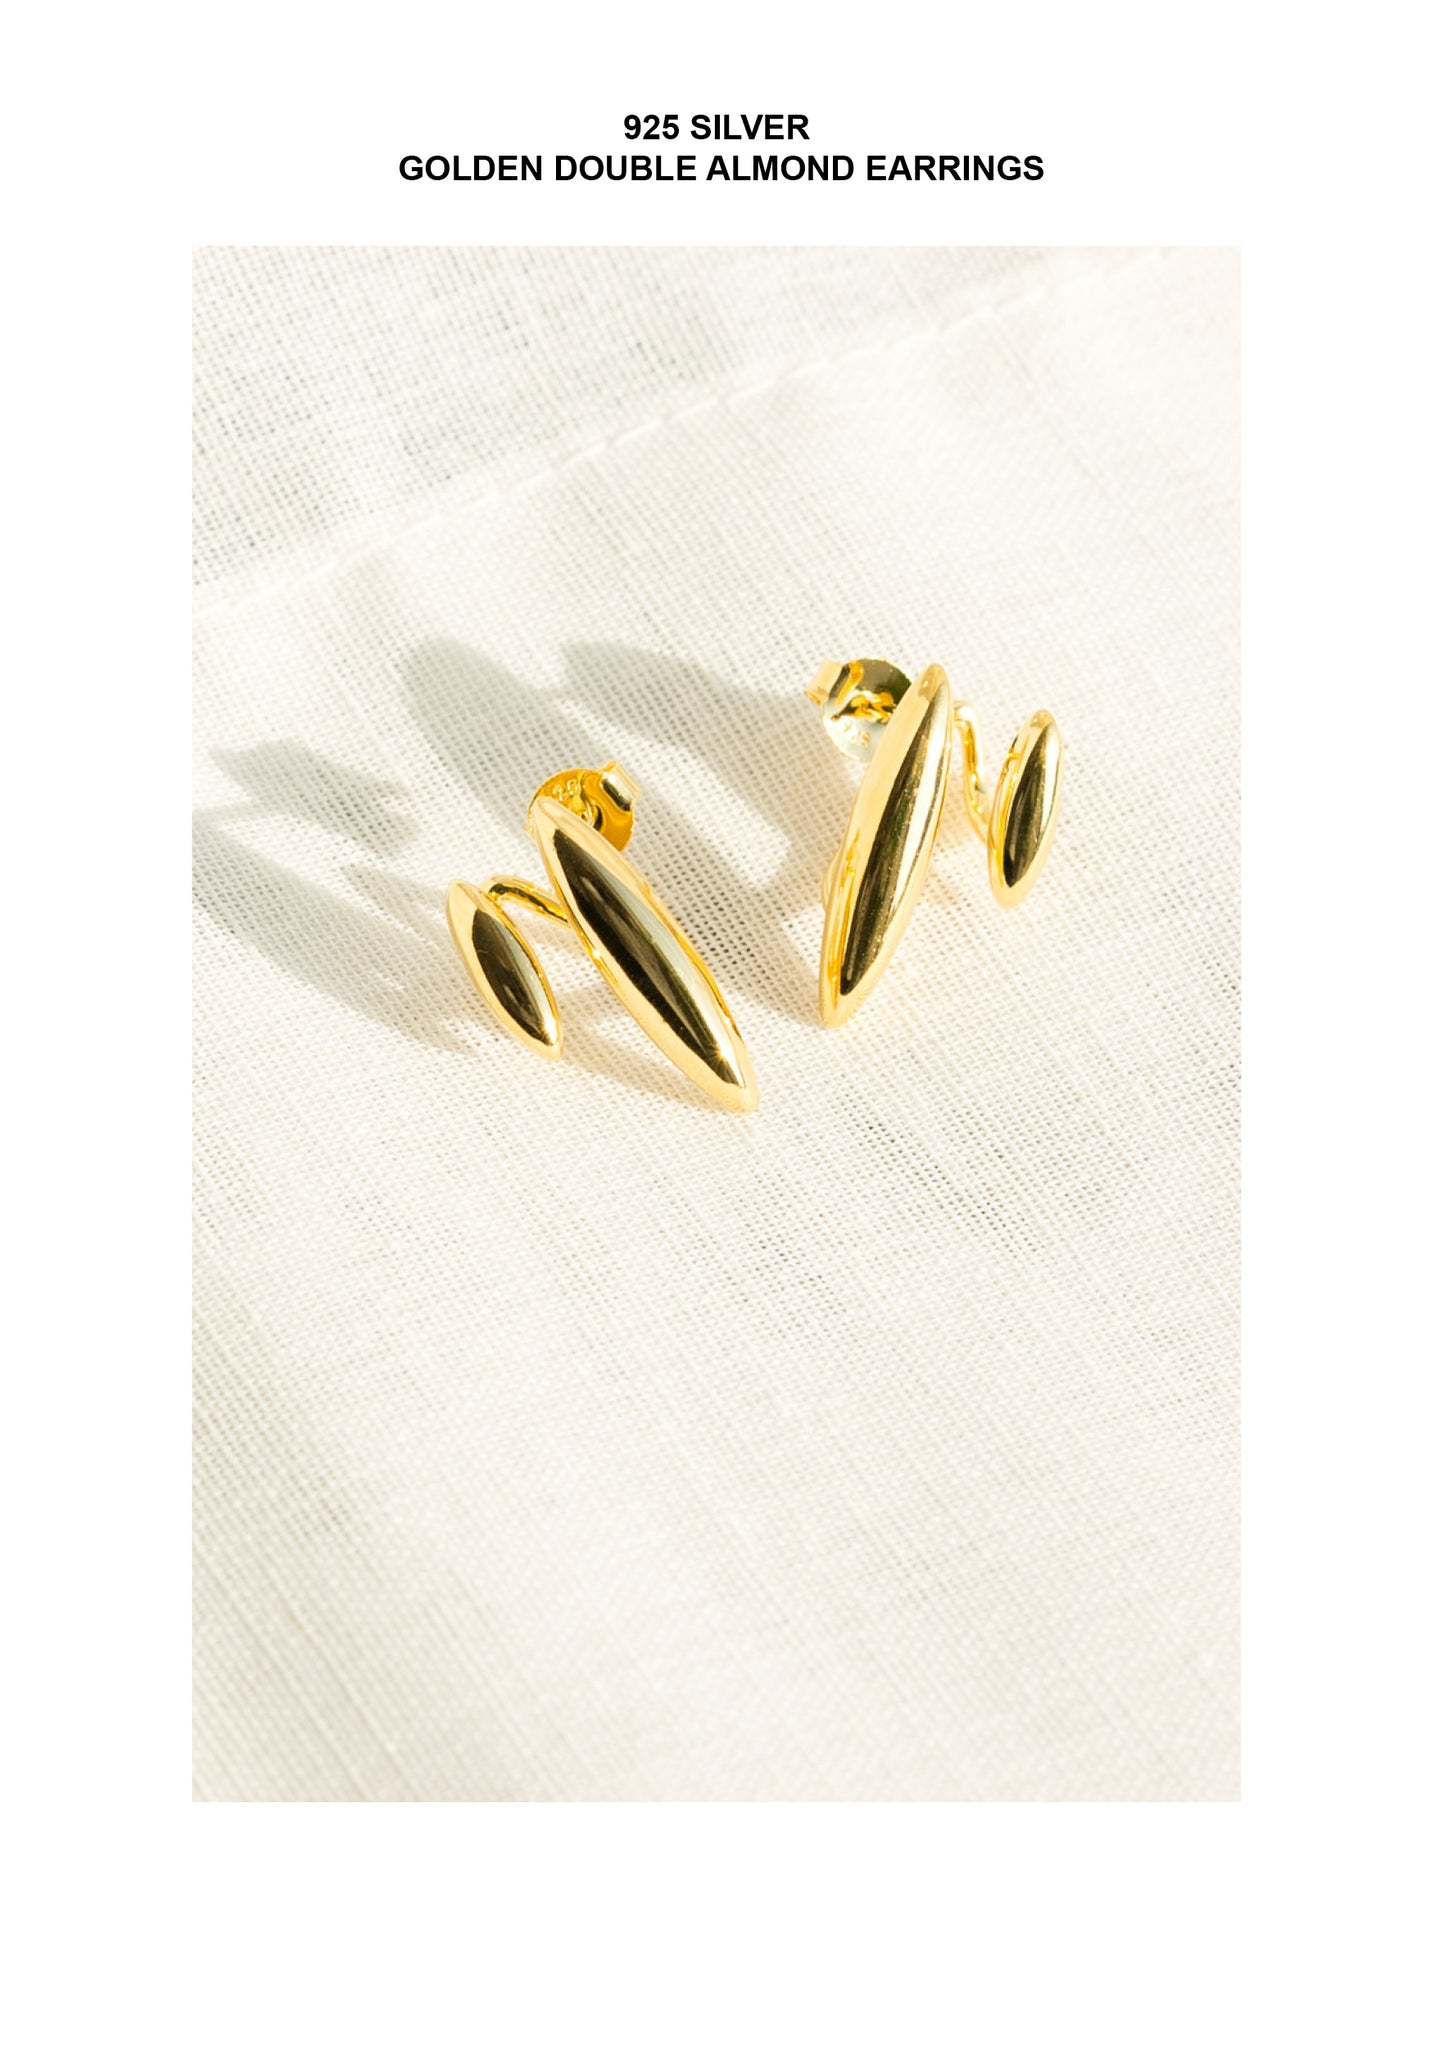 925 Silver Golden Double Almond Earrings - whoami